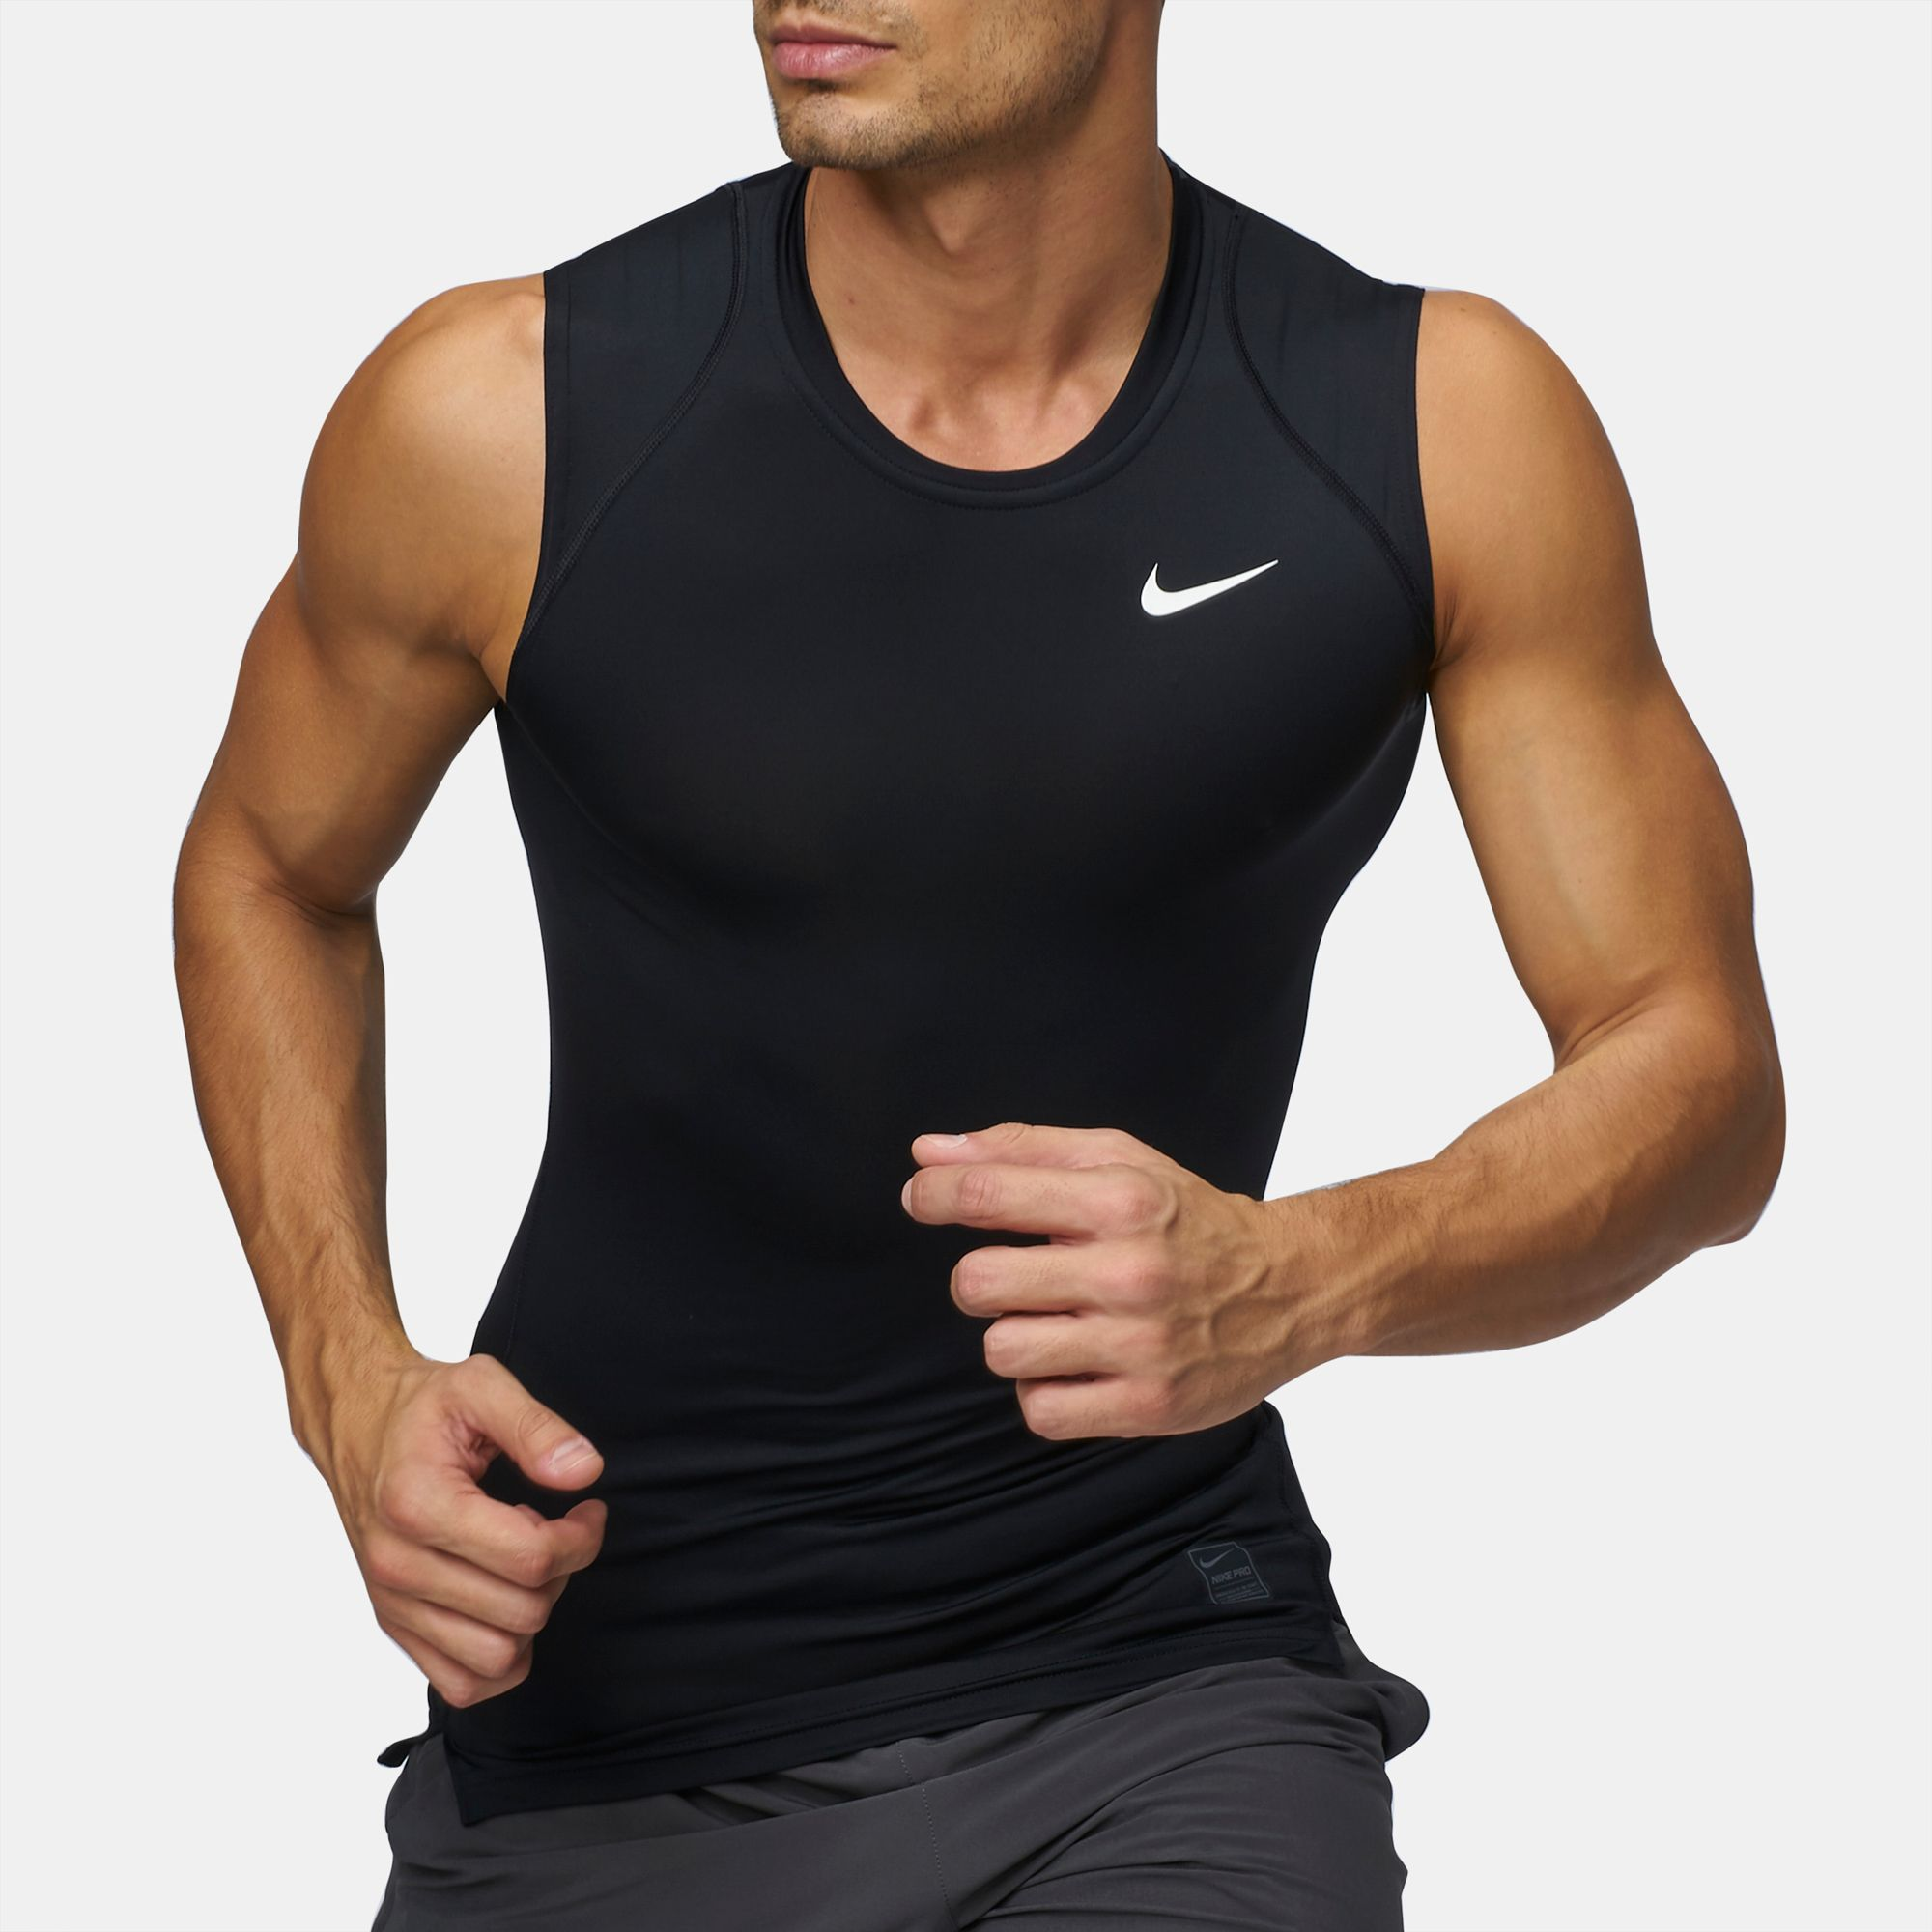 cd18888a Shop 41 Nike Pro Compression Sleeveless Training T-Shirt for Mens by ...